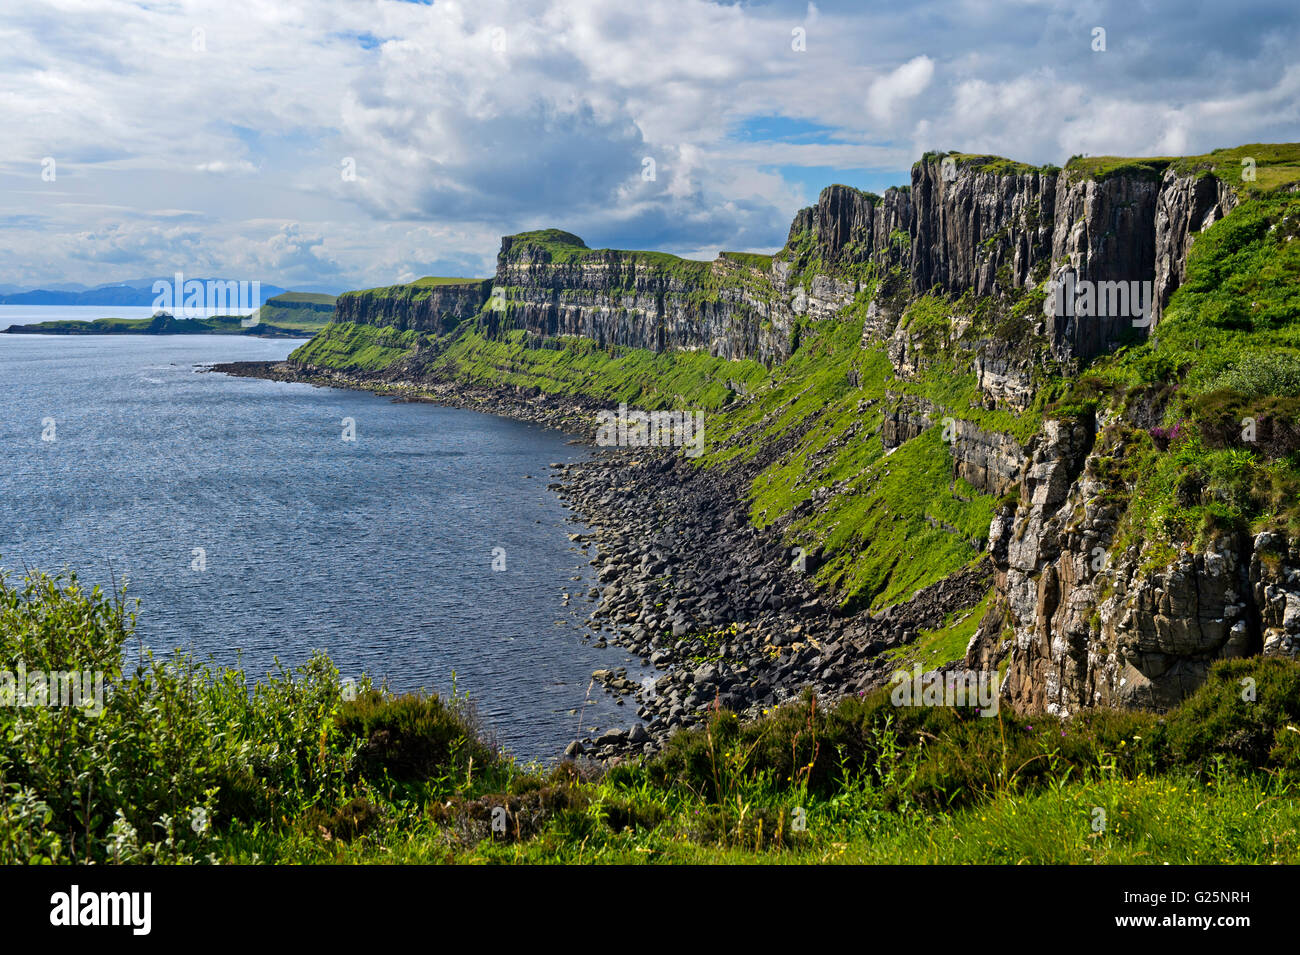 Cliff in the northeast of the Trotternish Peninsula in Staffin, Isle of Skye, Scotland, United Kingdom - Stock Image